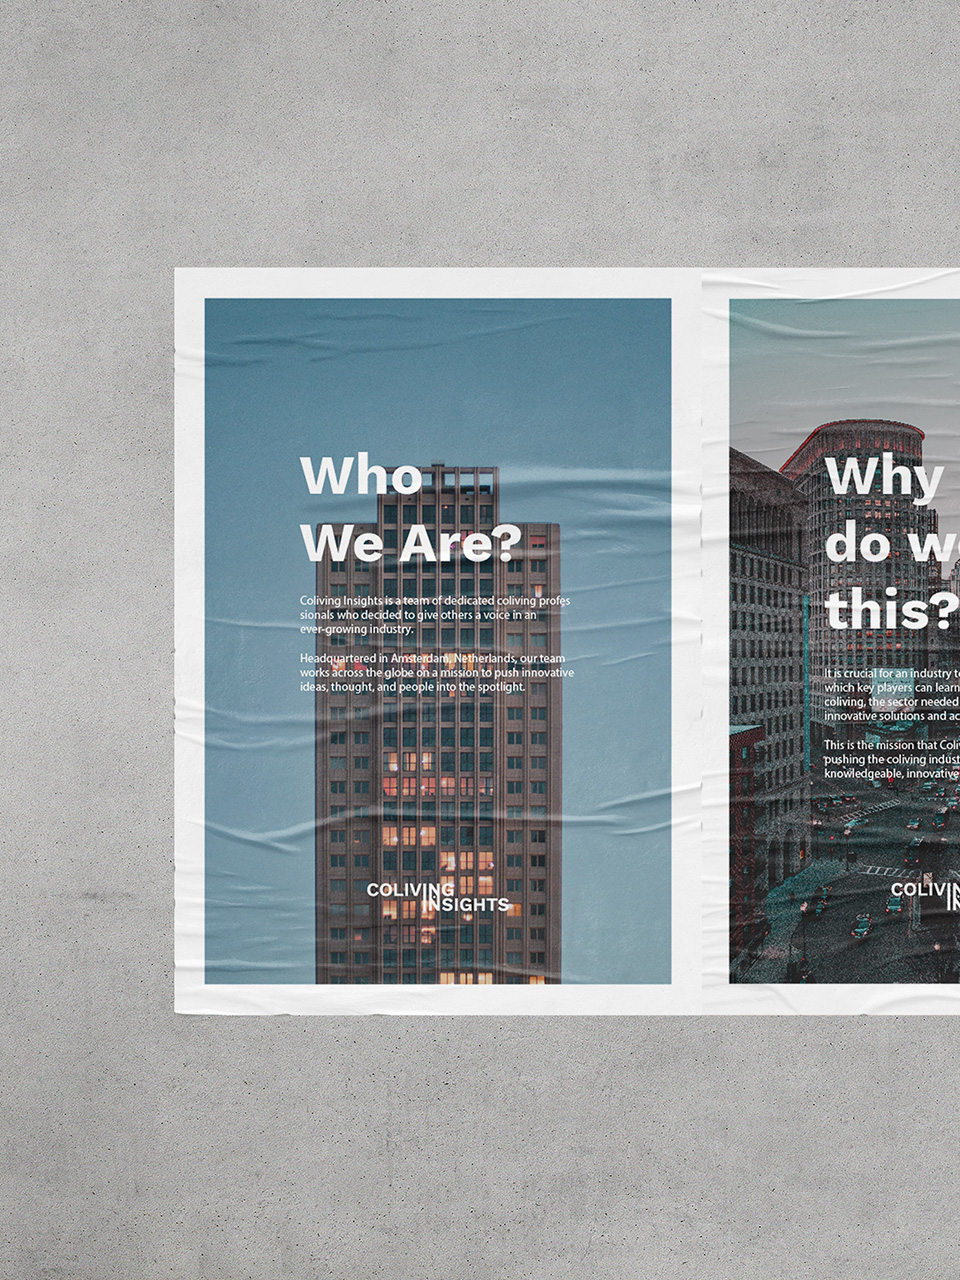 Coliving Insights Typography application mockup by SPX Agency